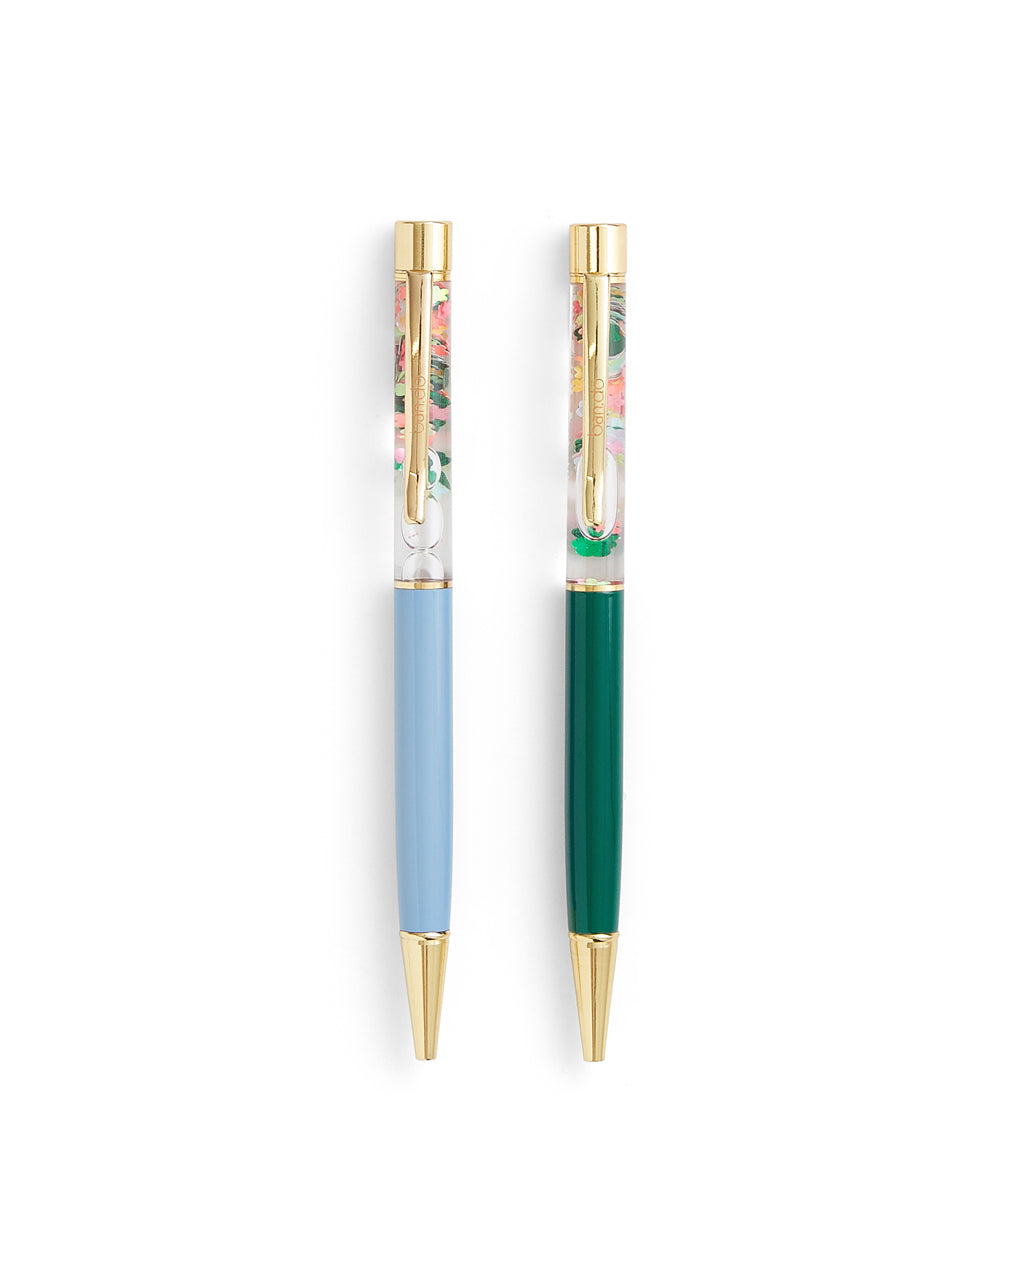 one green and one blue glitter bomb pen with a floral design